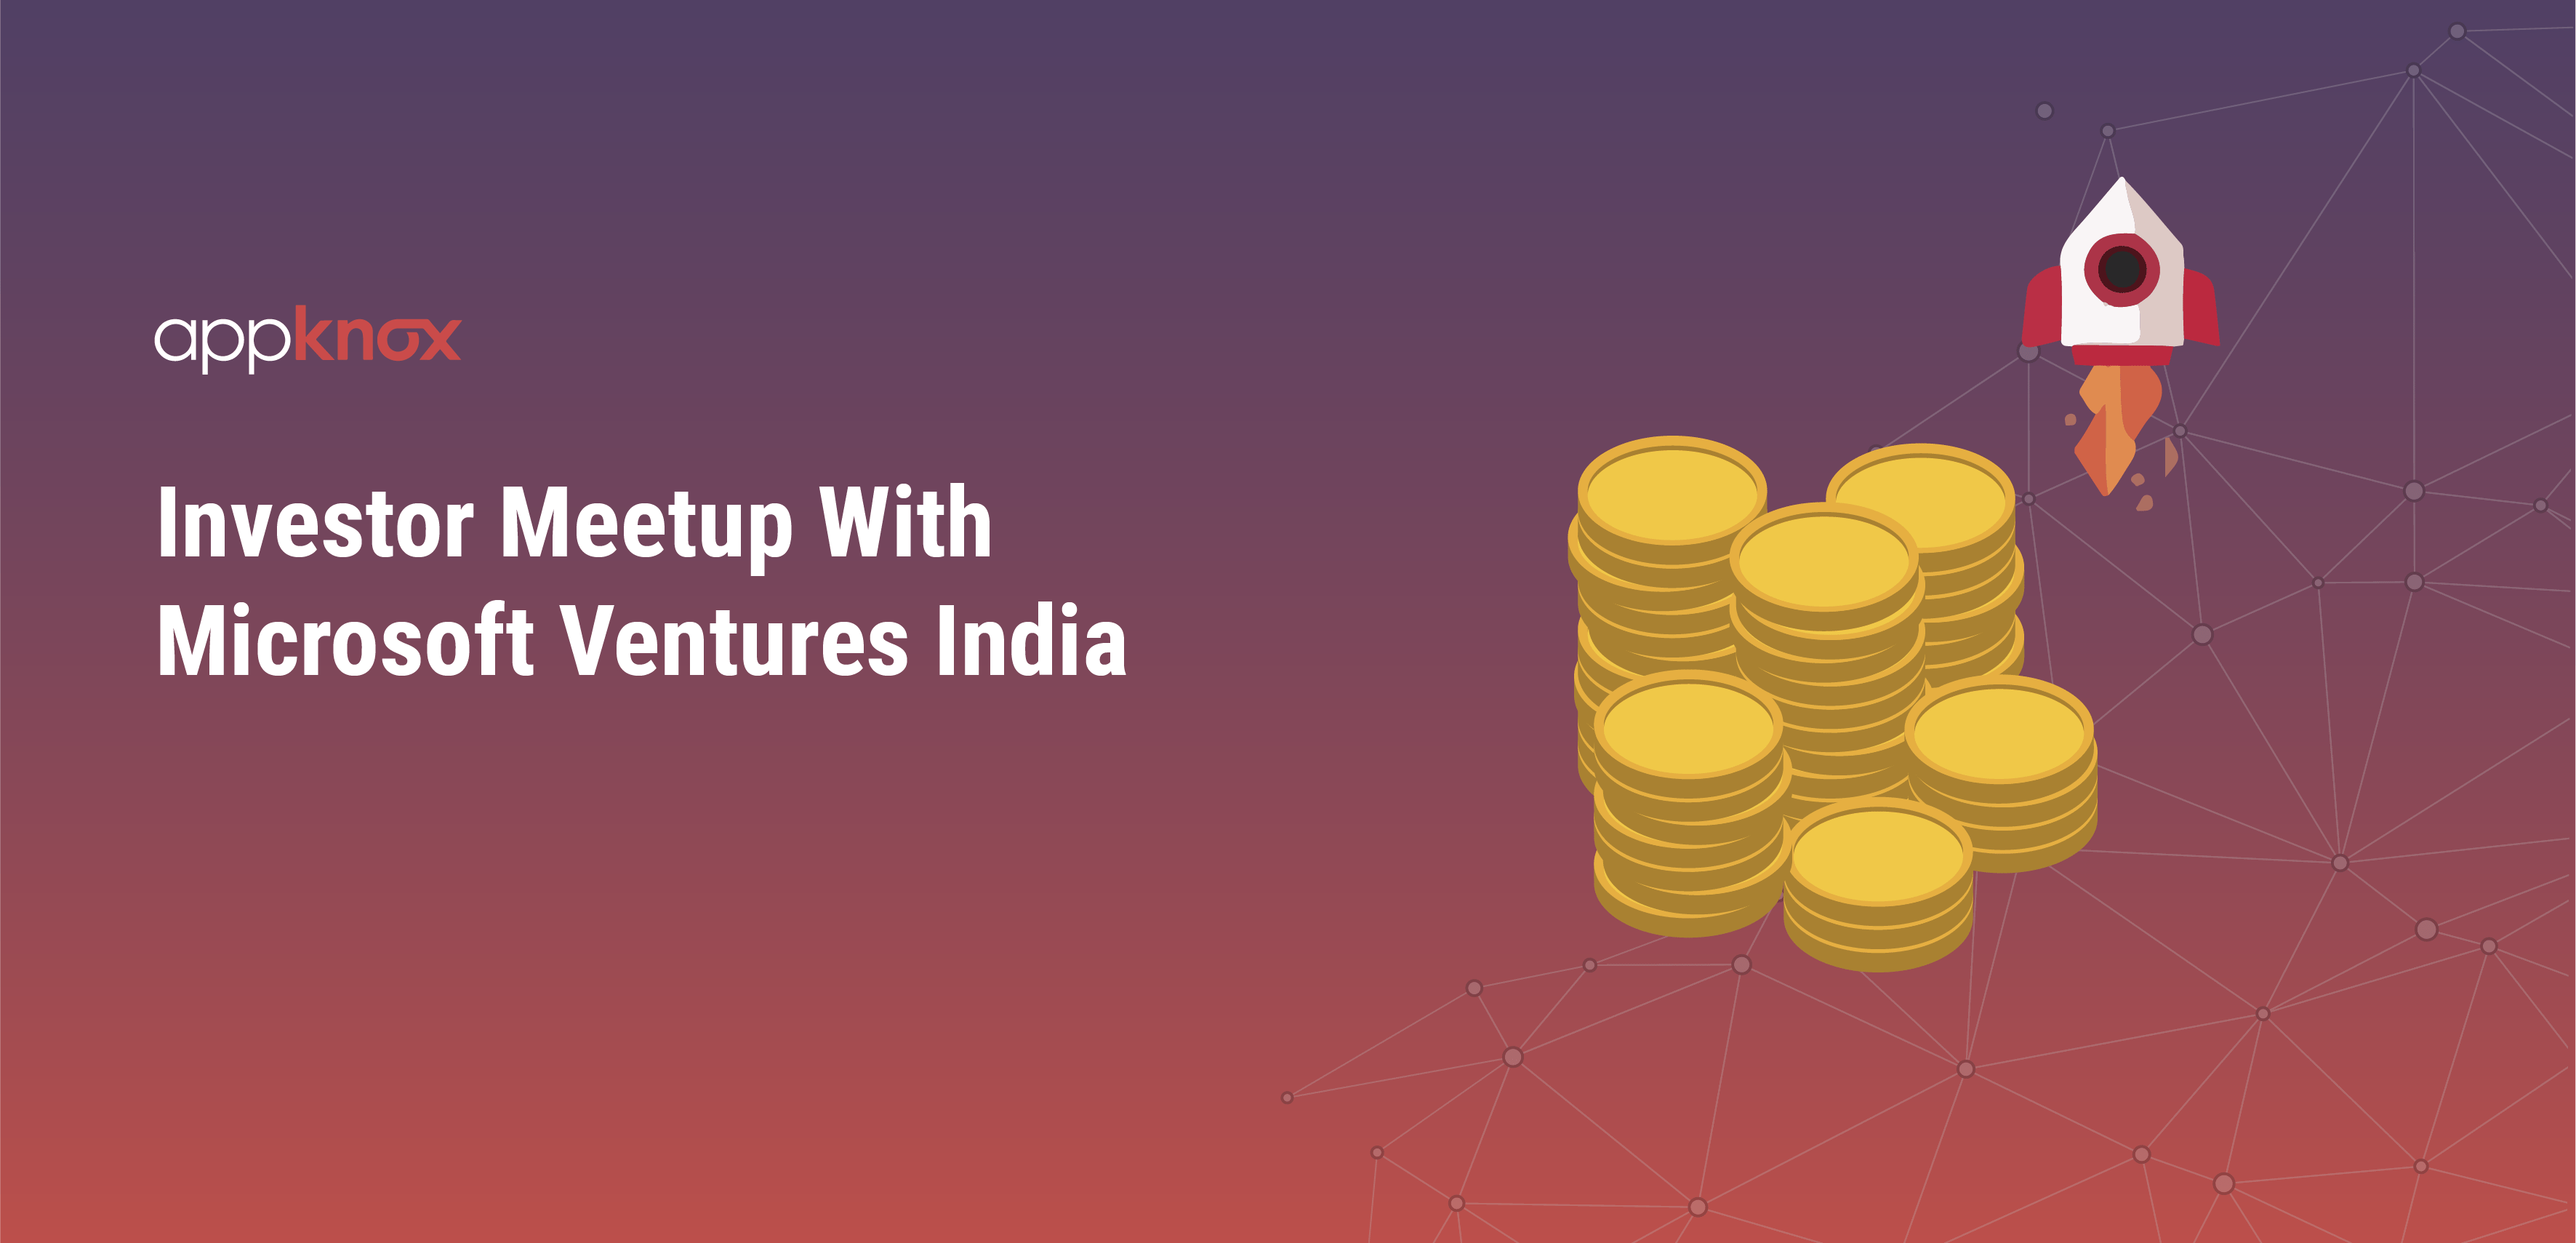 Investor Meetup With Microsoft Ventures India